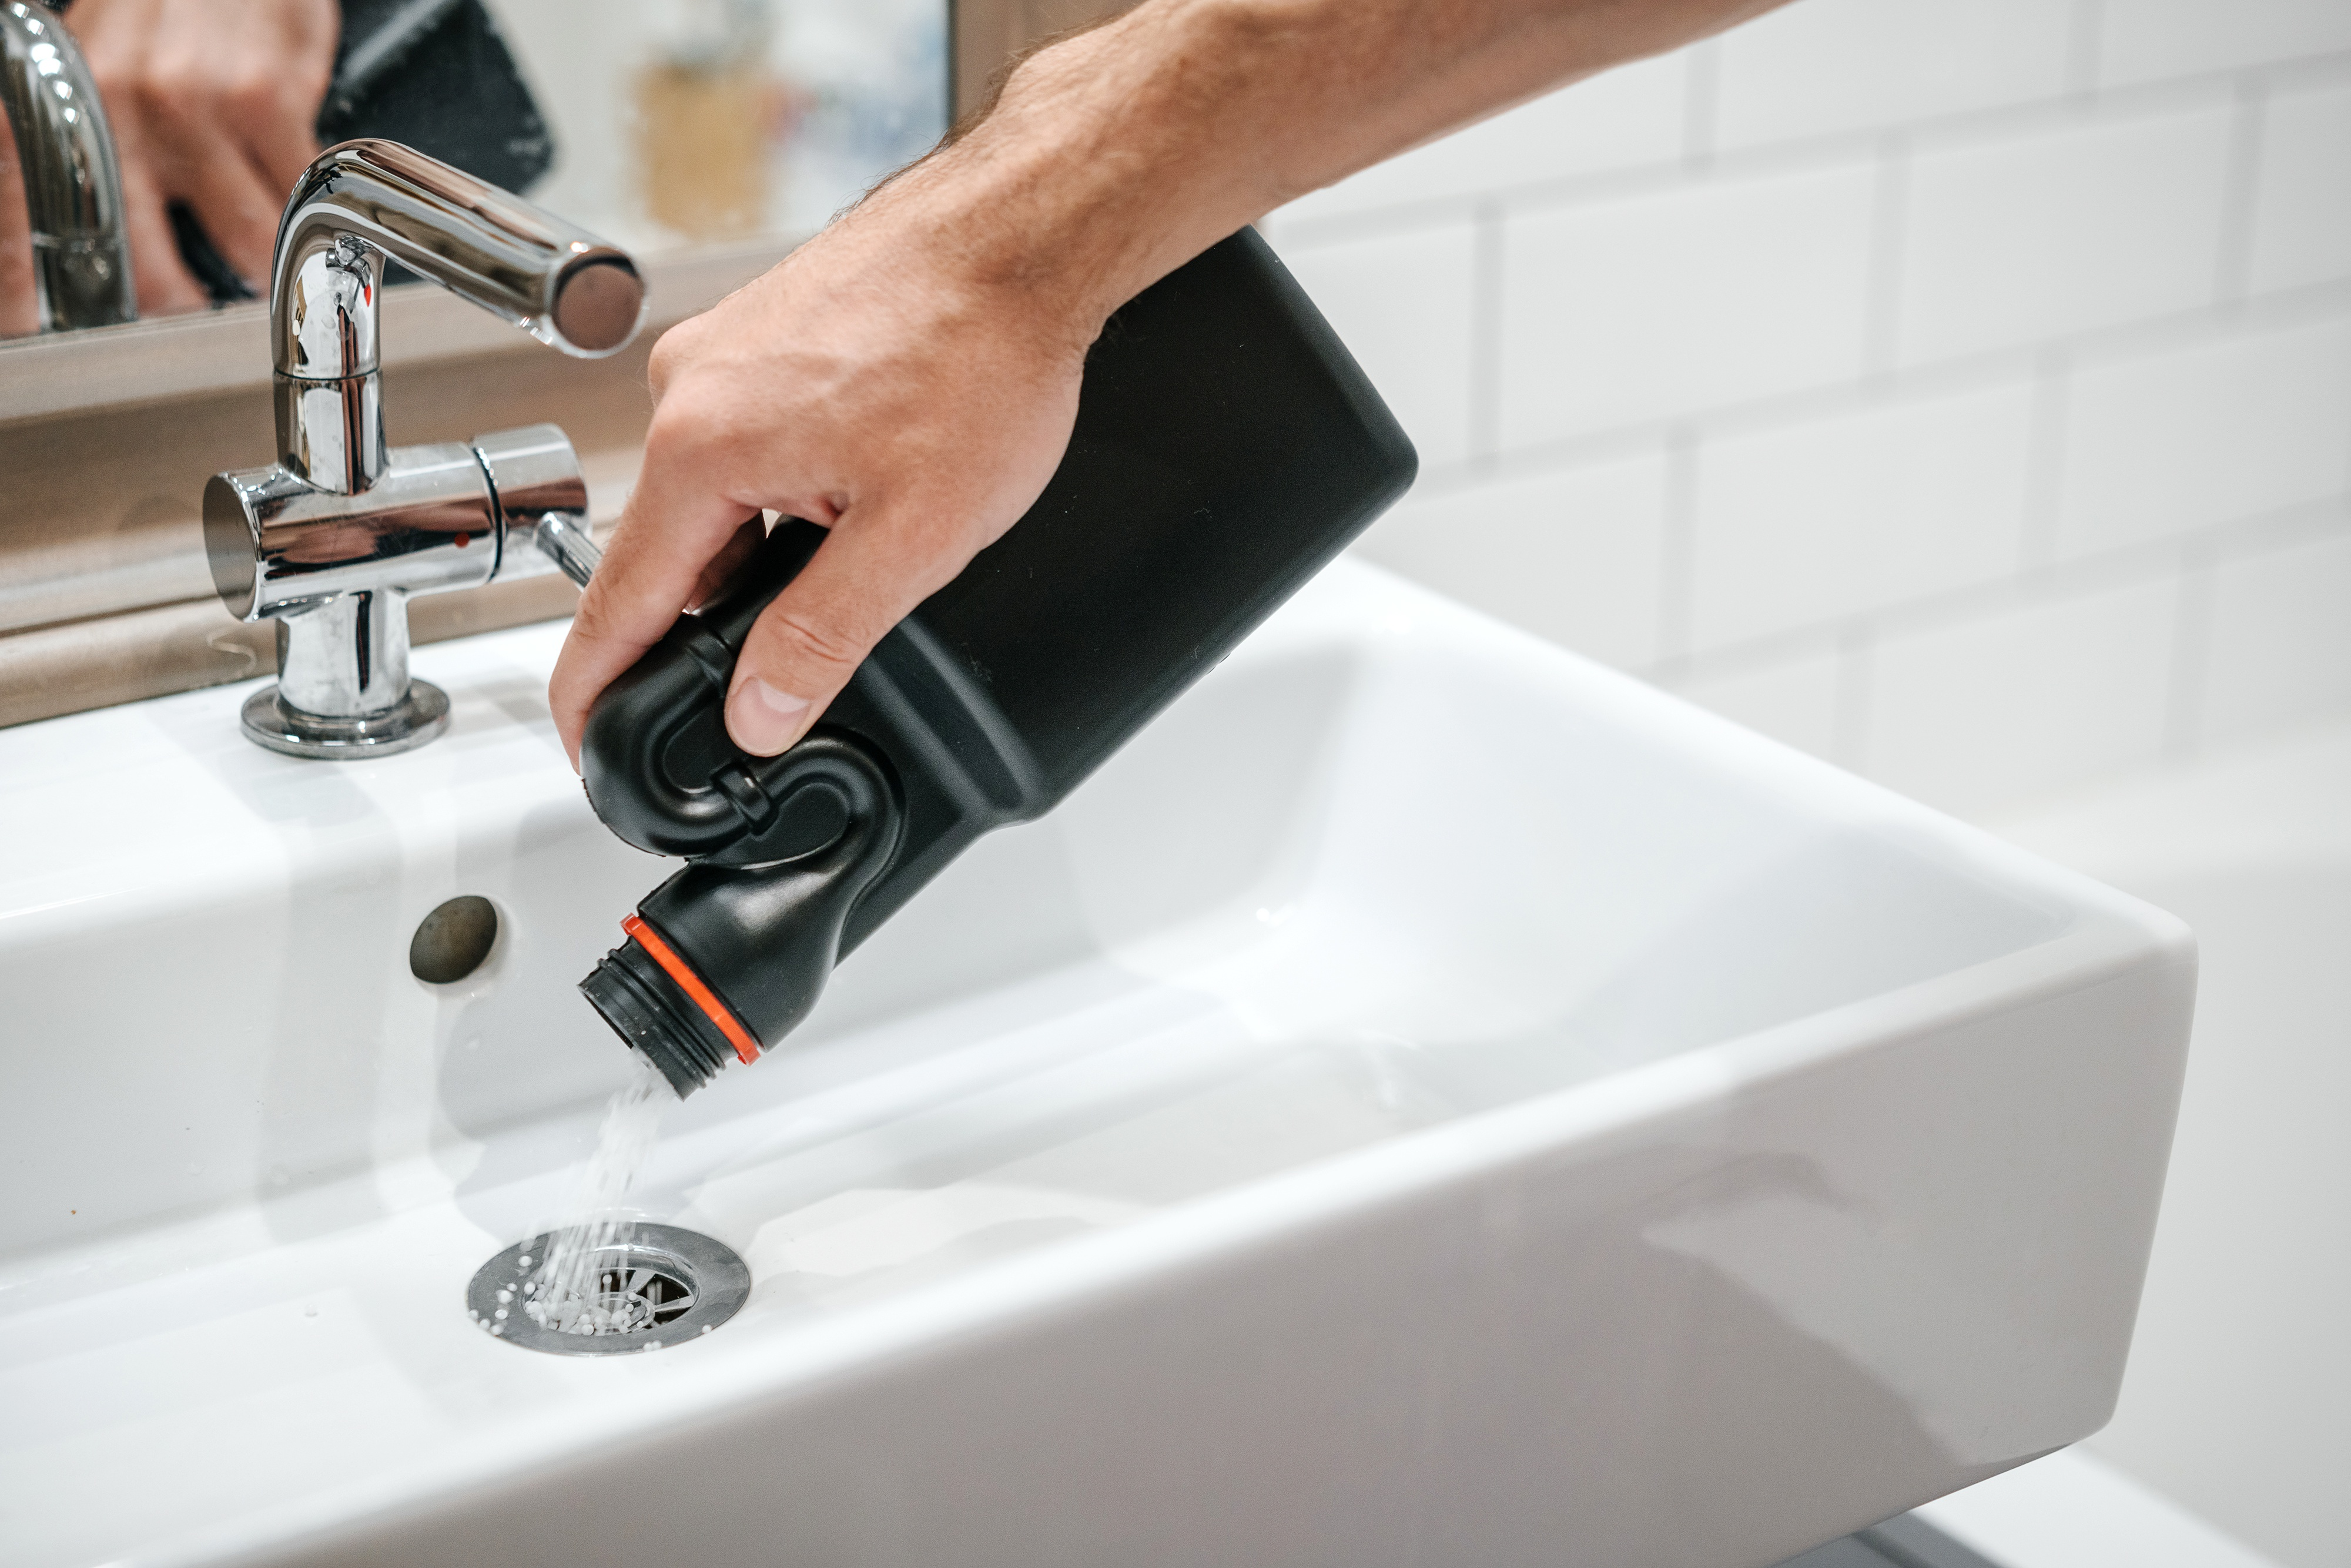 5 Ways You're Ruining Your Drains